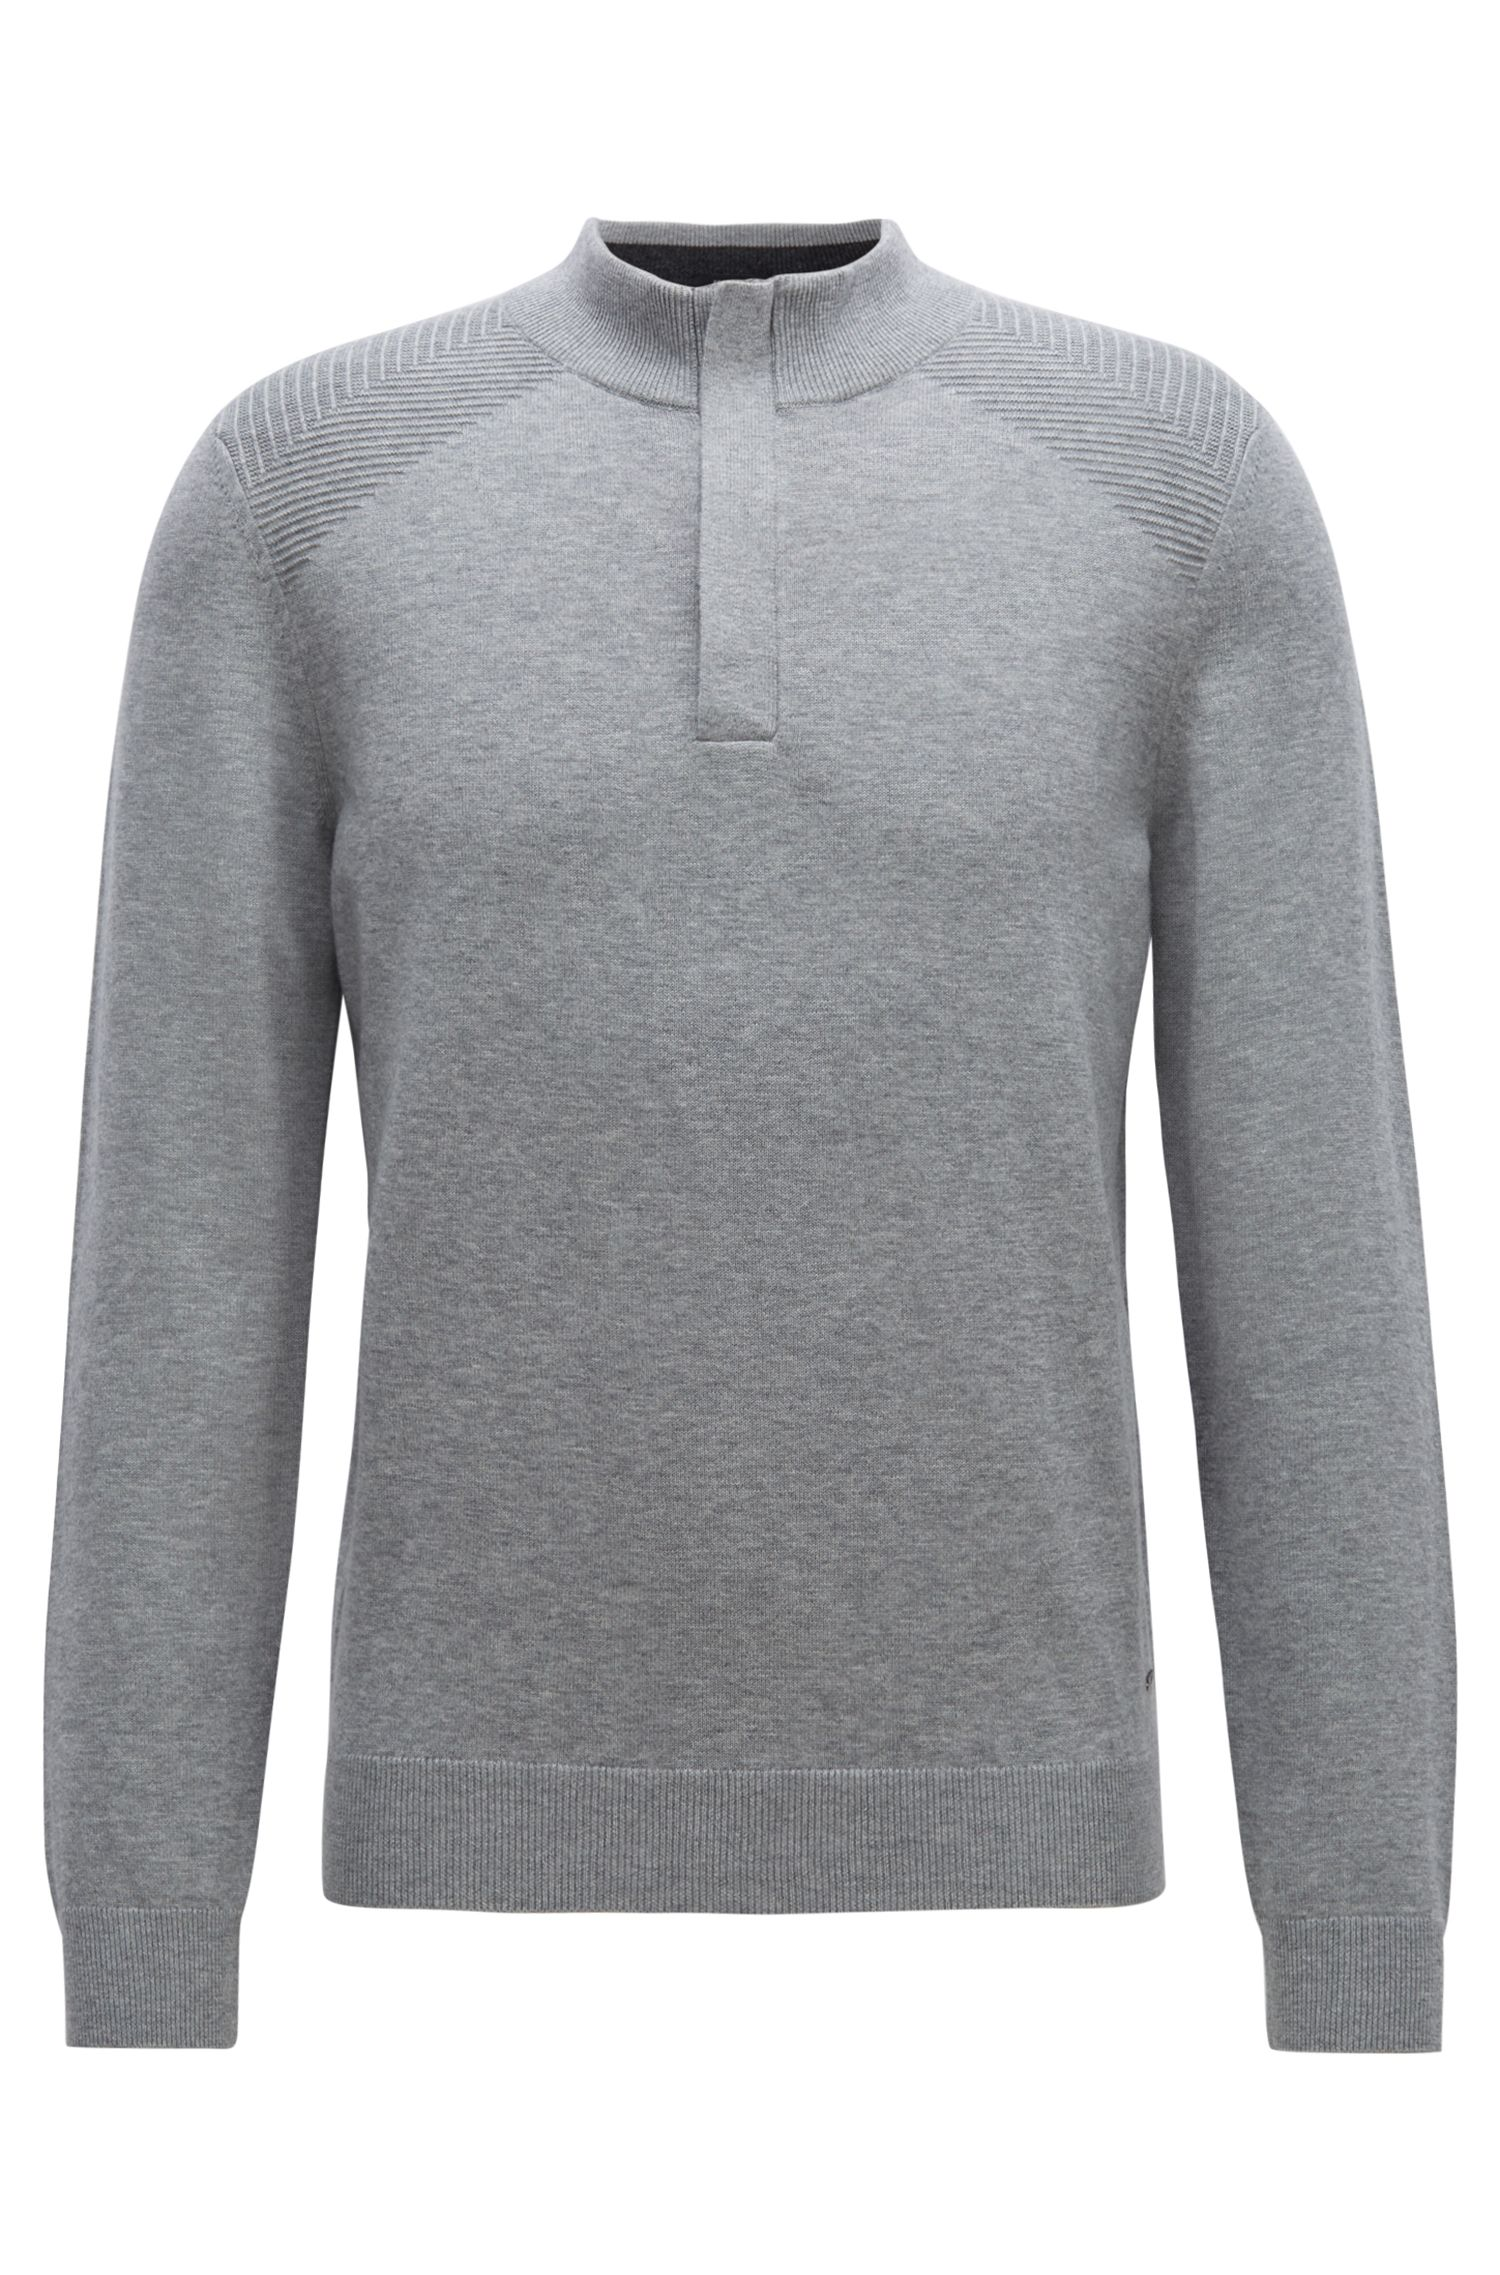 Zip-neck sweater in a wool-cotton blend, Silver